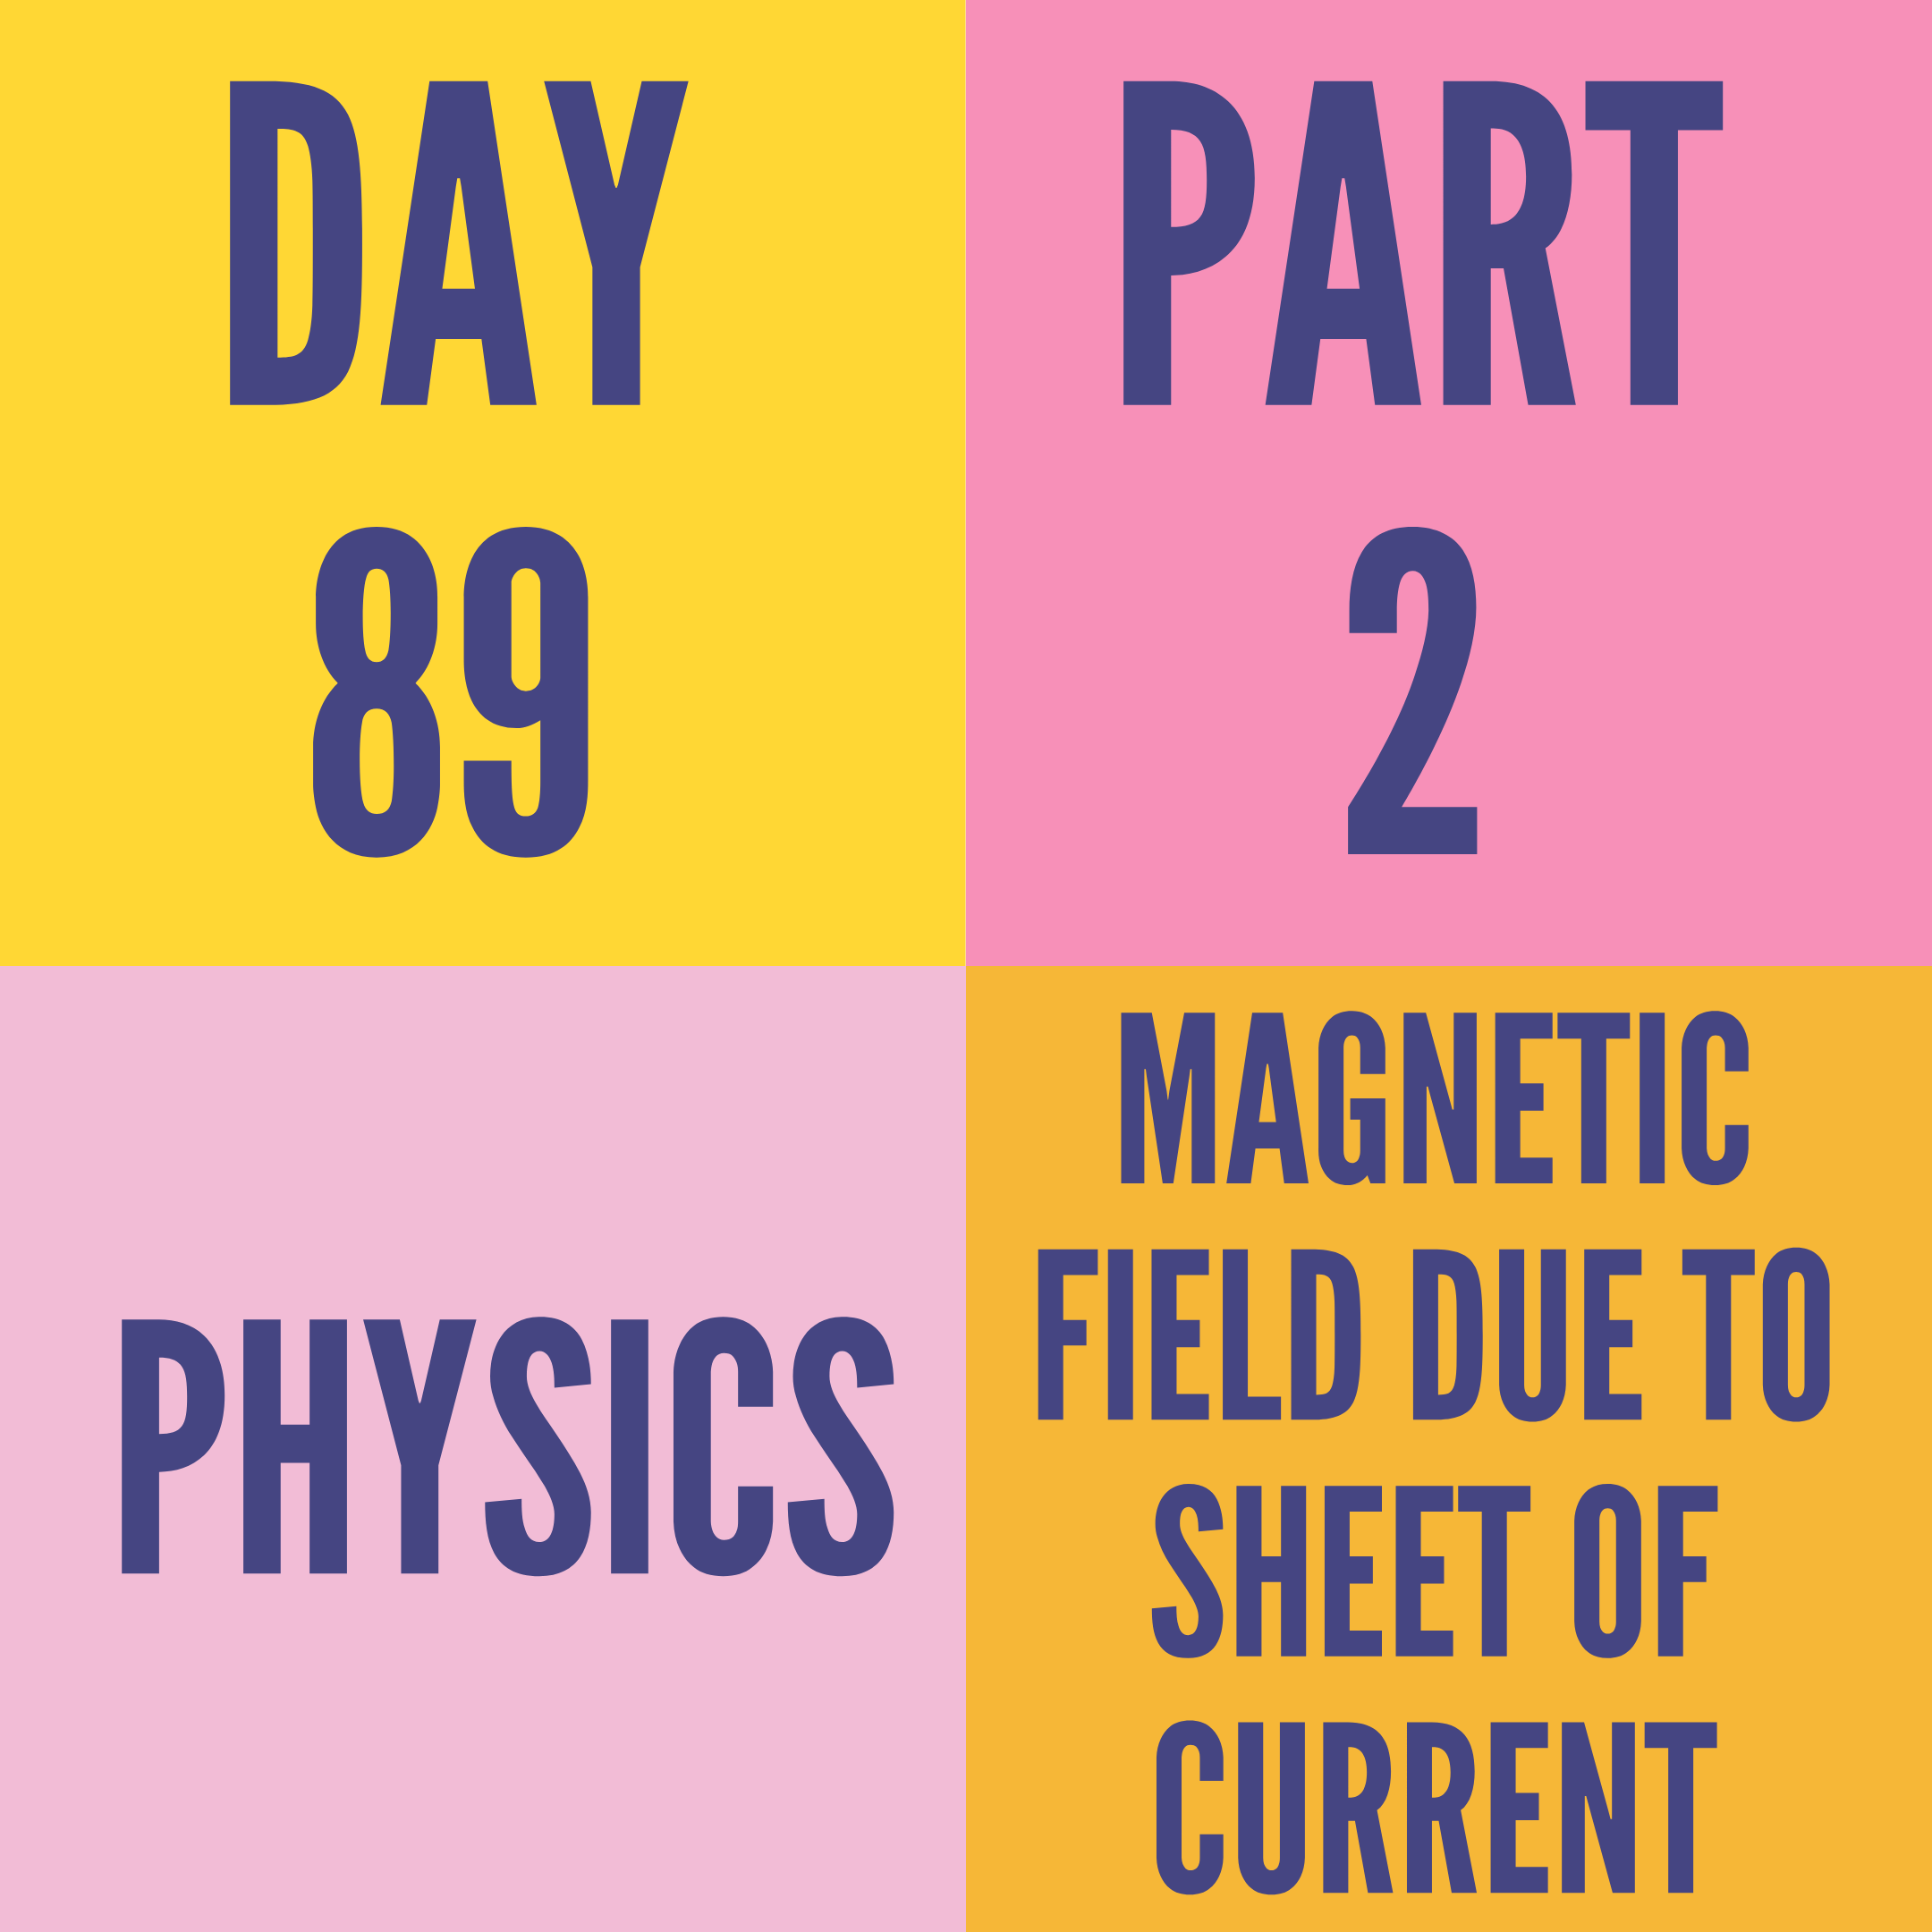 DAY-89 PART-2 MAGNETIC FIELD DUE TO SHEET OF CURRENT